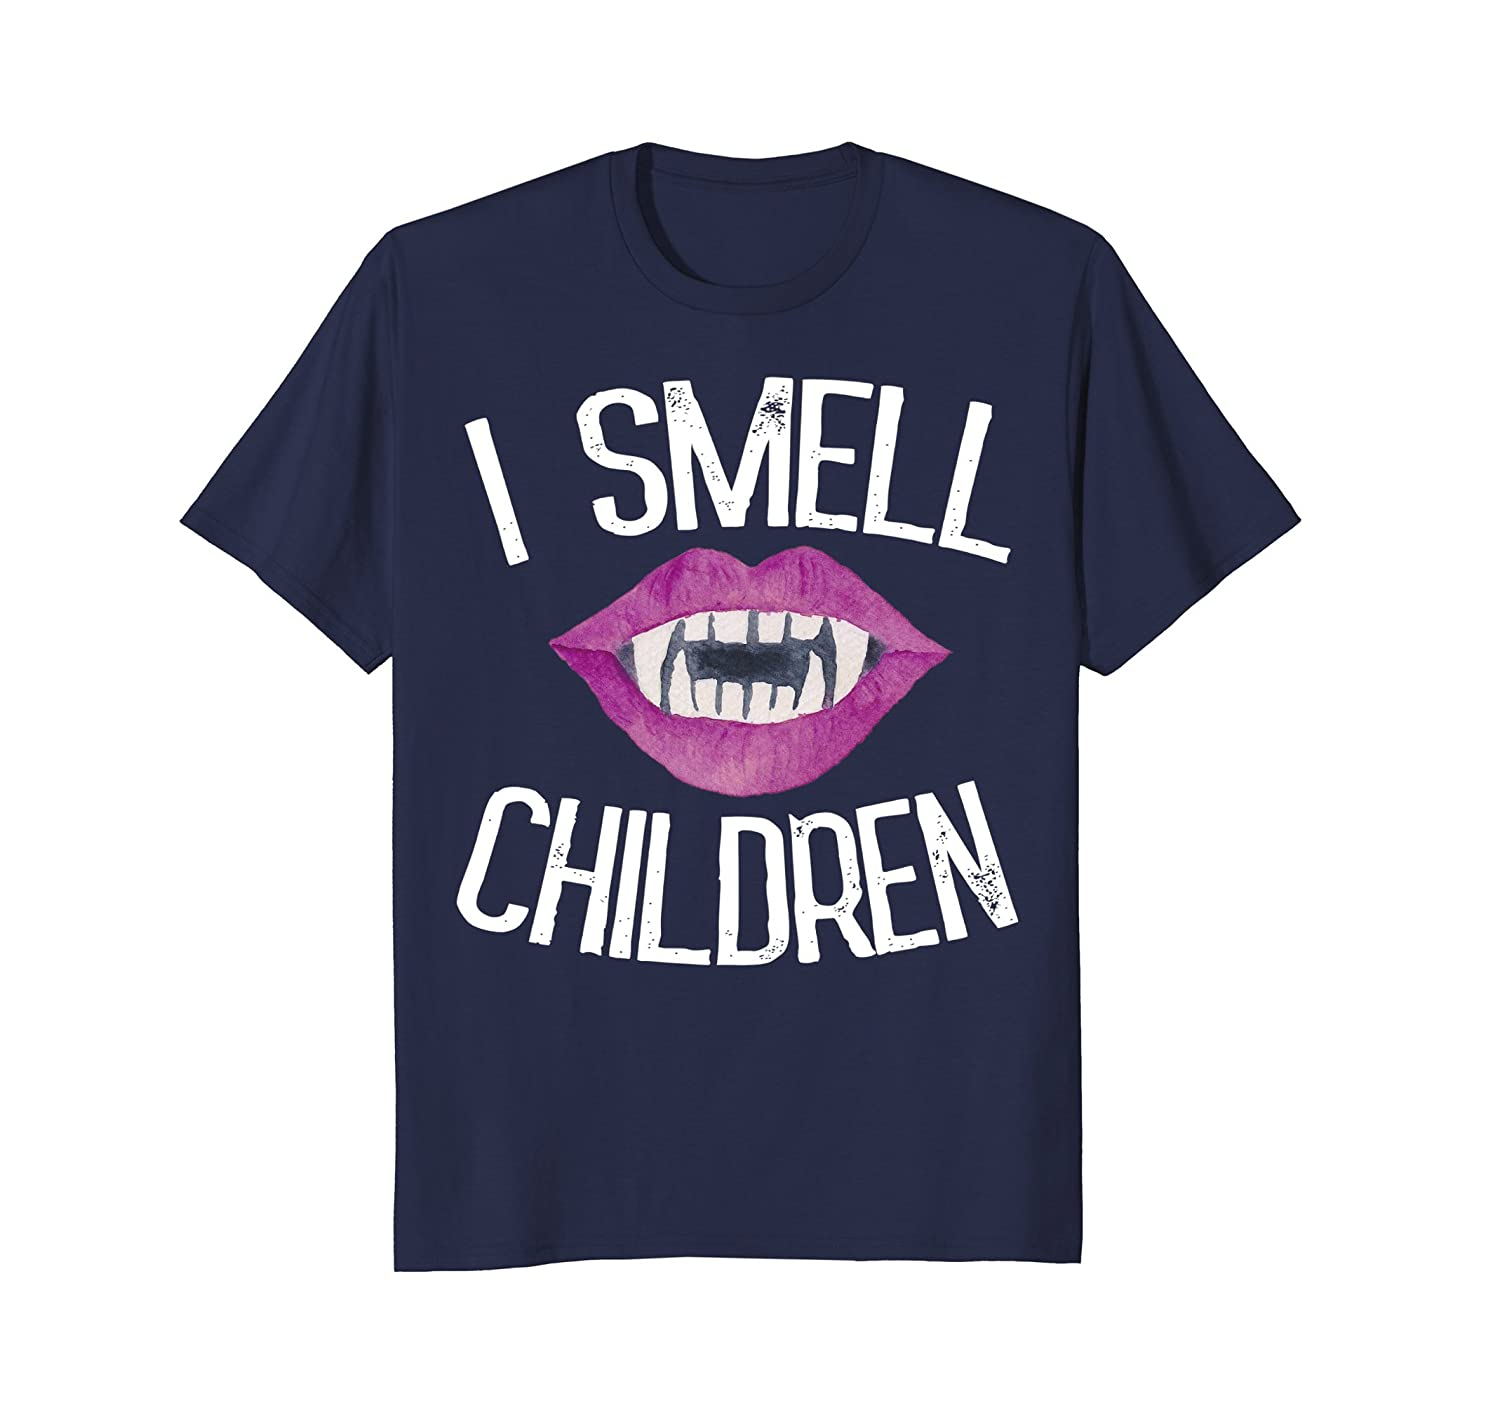 ac63cb39 I Smell Children T-Shirt Funny Halloween Party Gift Shirt-ANZ ...